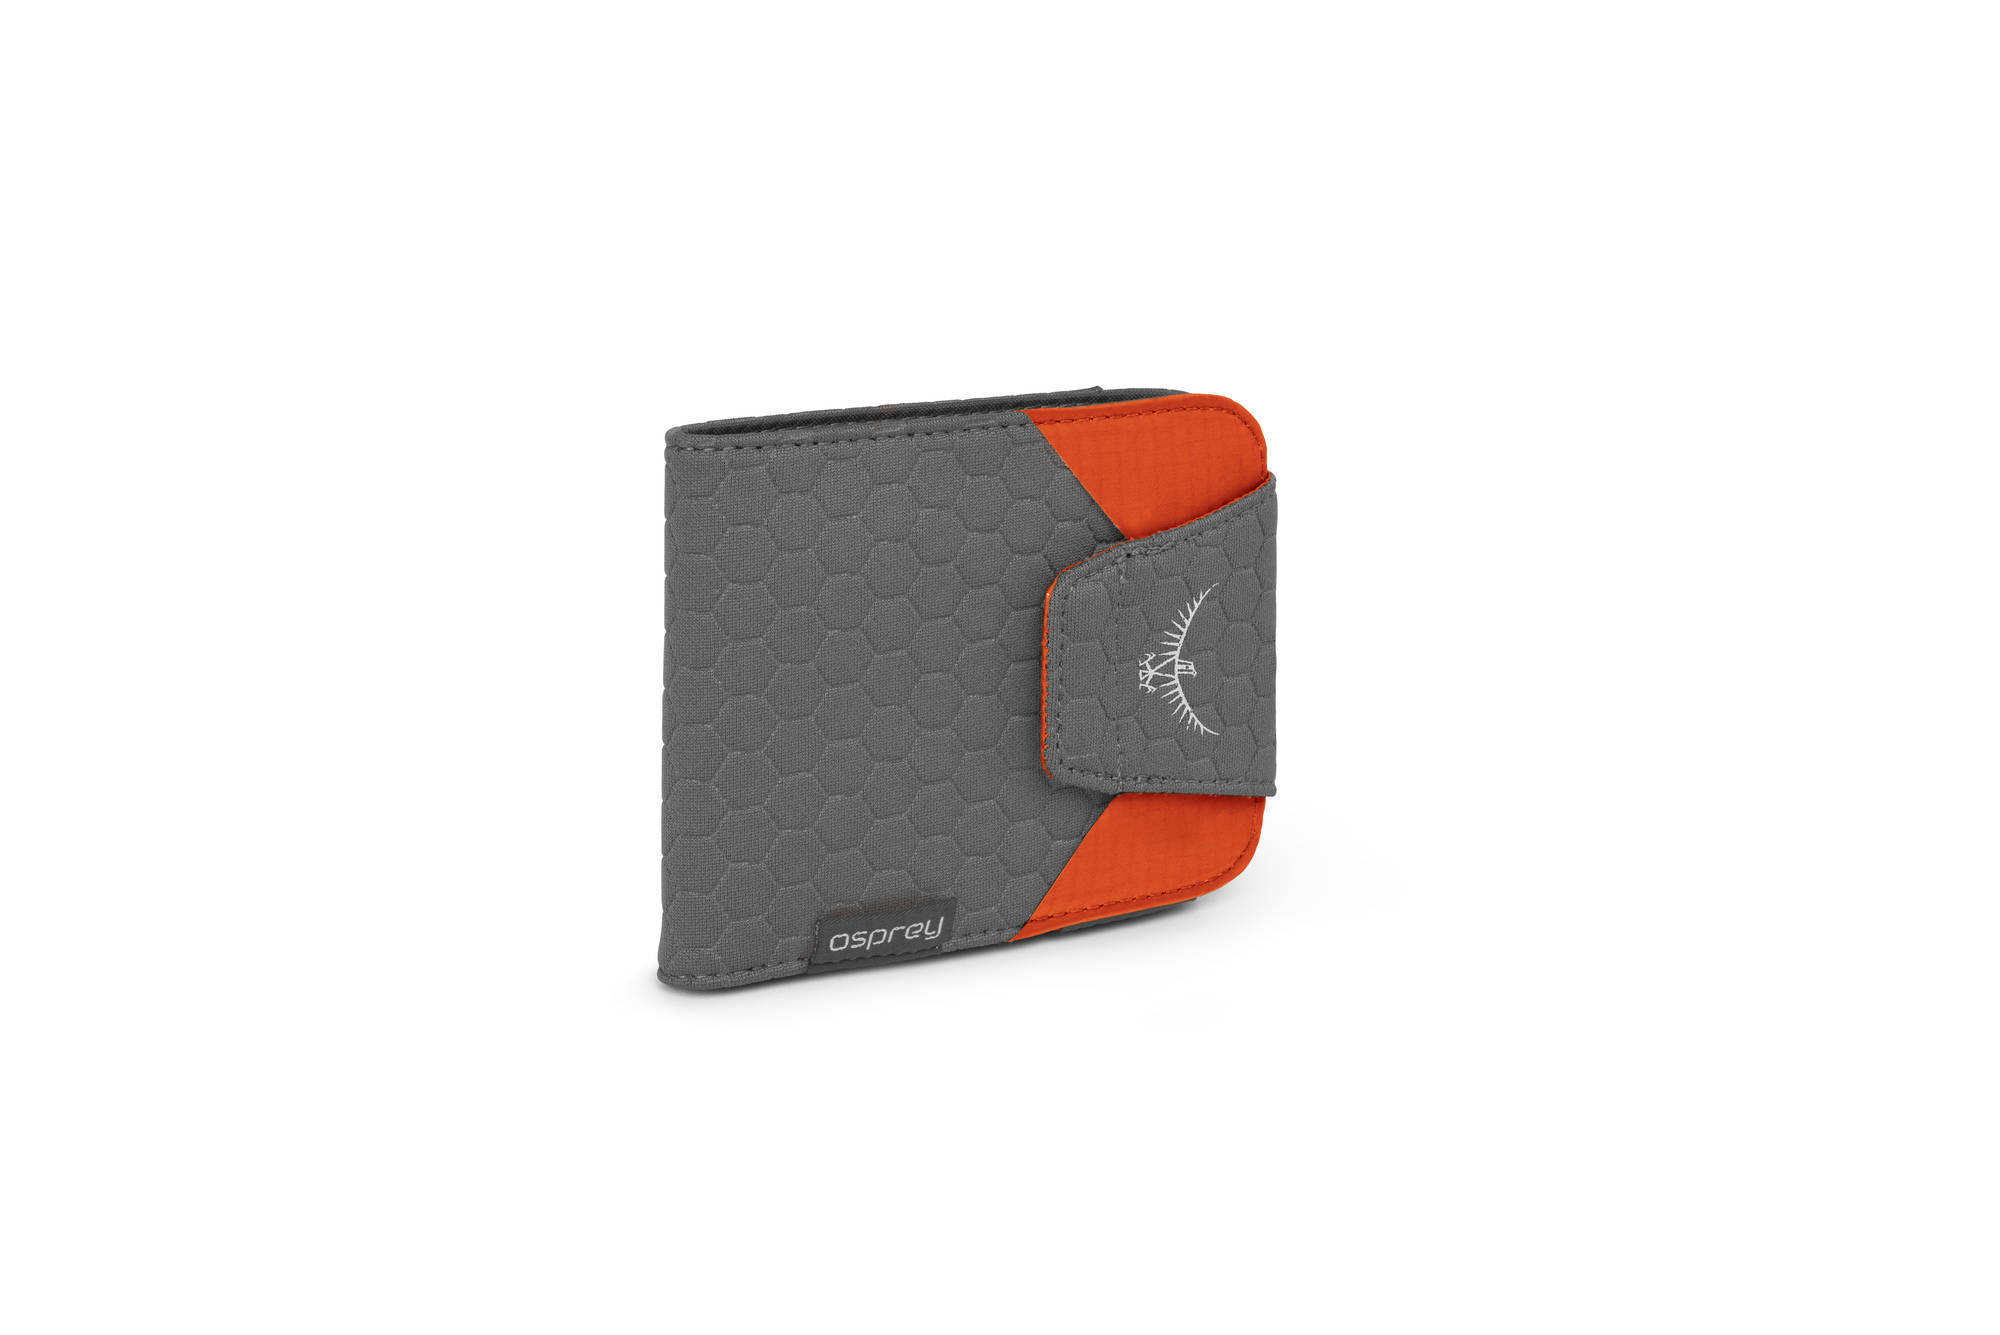 Аксессуары Кошелек Osprey QuickLock RFID Wallet Poppy Orange Quicklock_Wallet_Side_Poppy_Orange_web.jpg